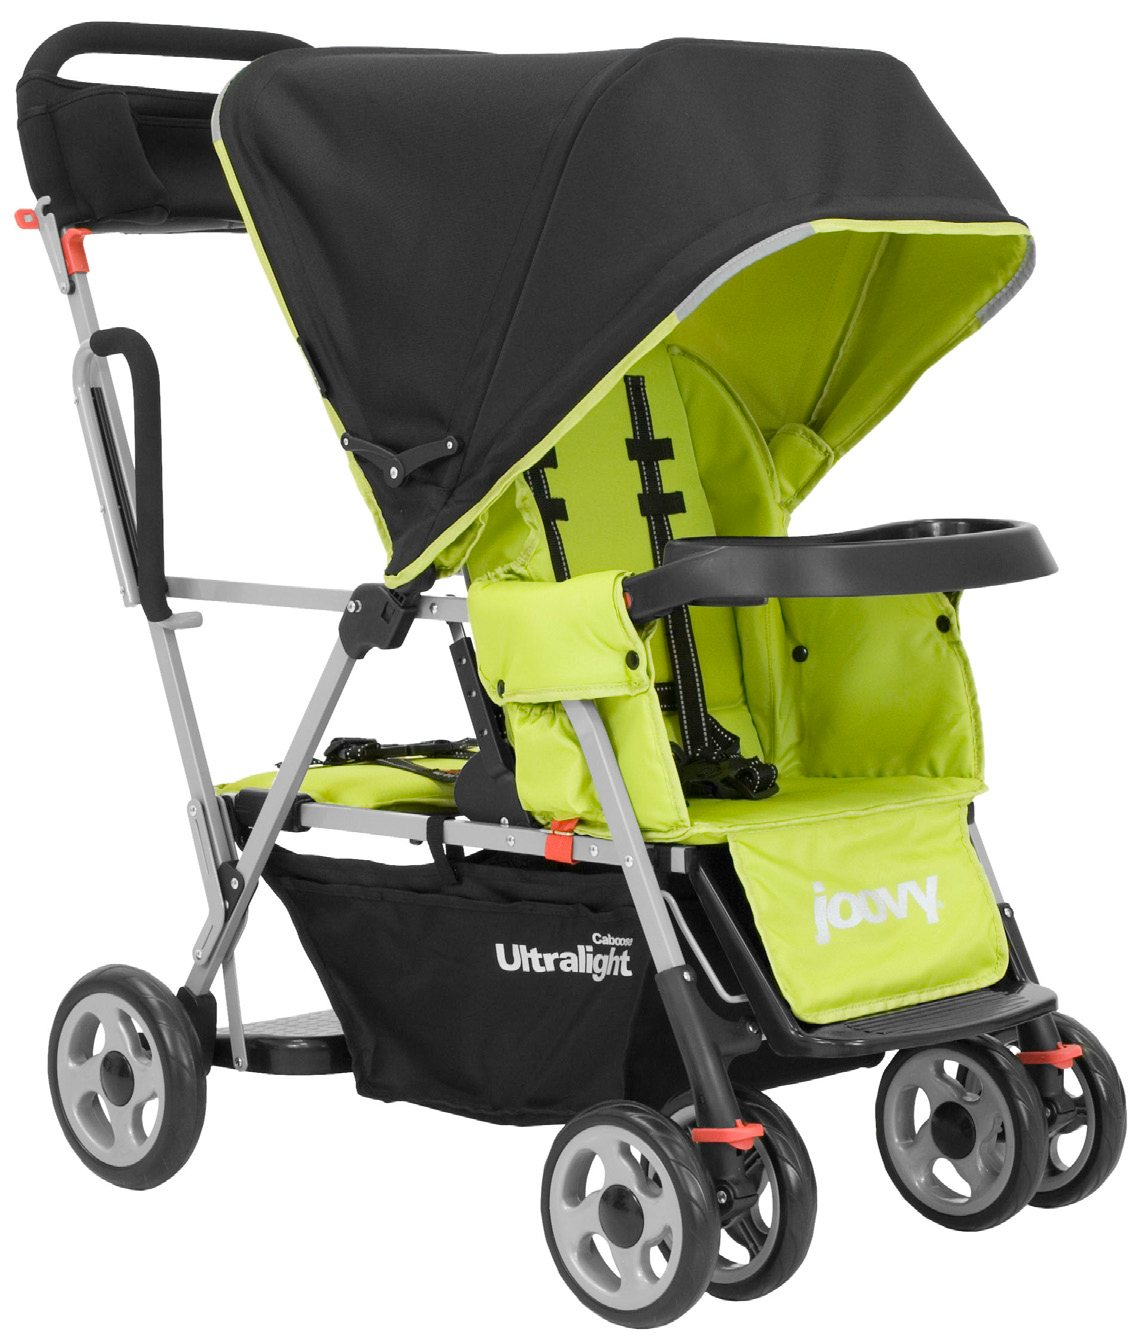 mckinney mommas a double stroller that works joovy caboose ultralight stand on tandem. Black Bedroom Furniture Sets. Home Design Ideas